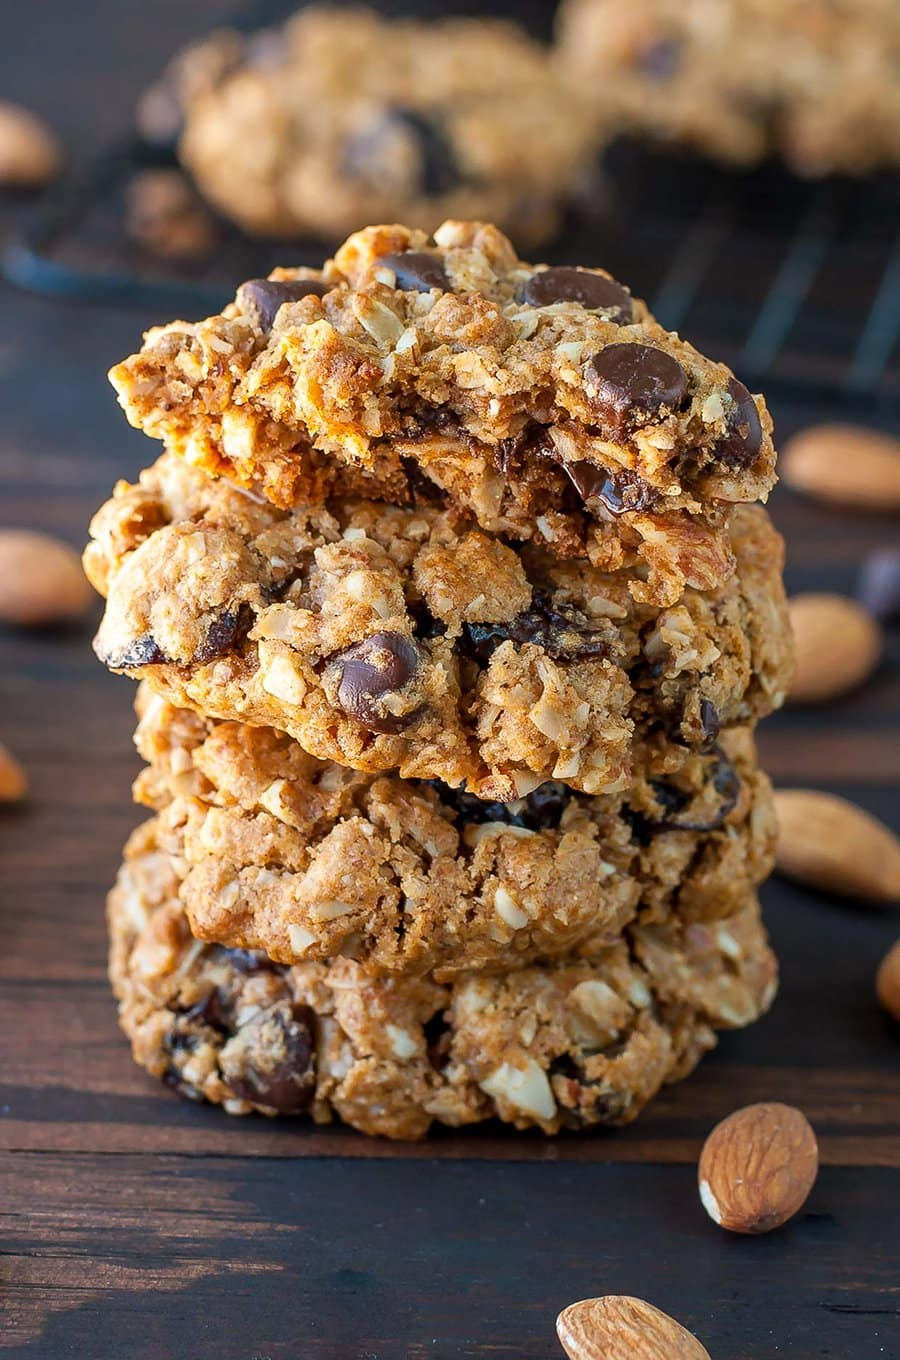 Gluten-Free Chocolate Cherry Oat Cookies | Peas and Crayons